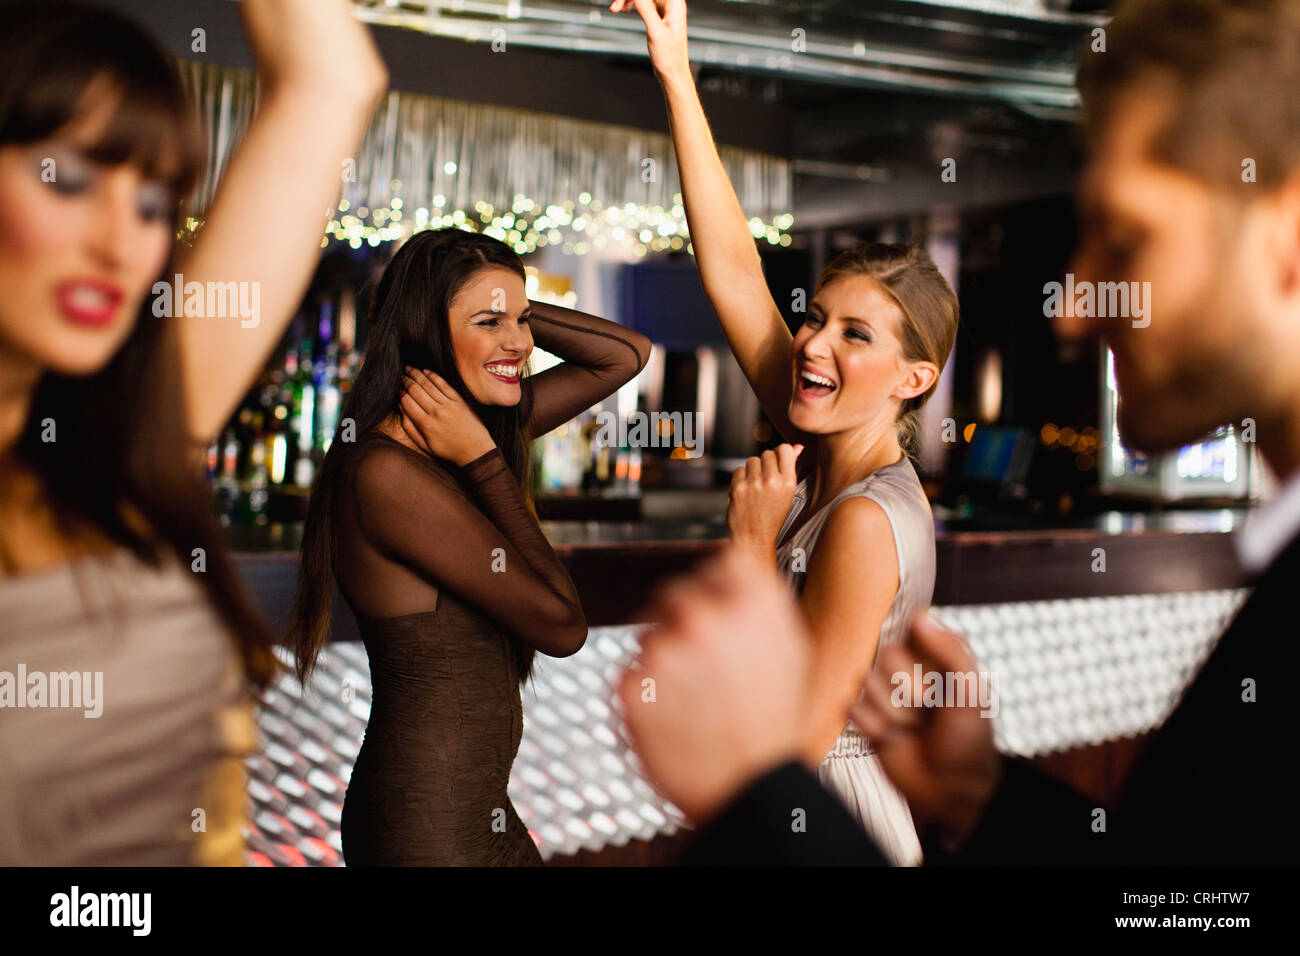 Smiling friends dancing in bar - Stock Image